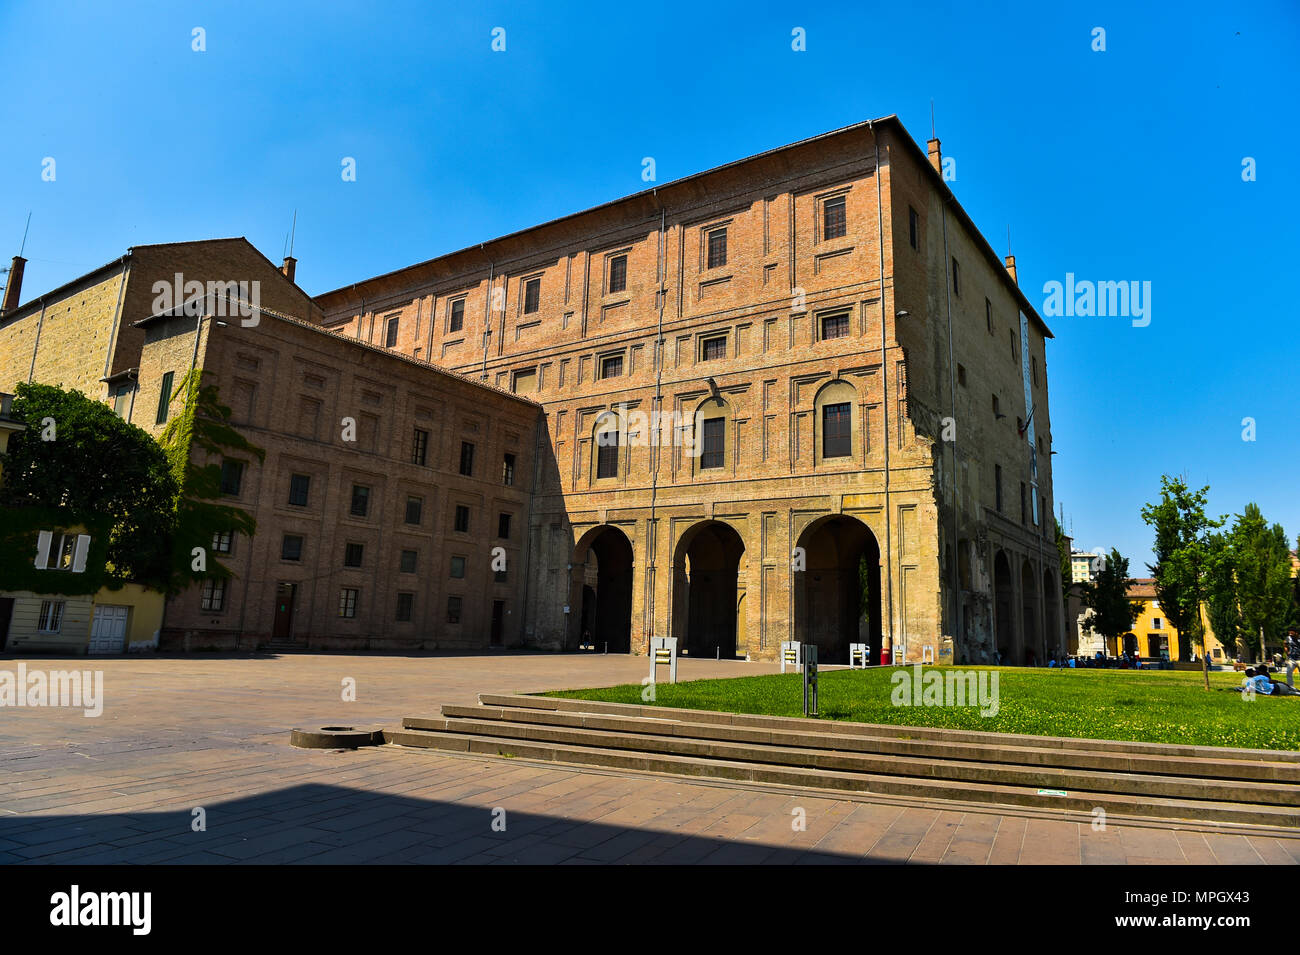 Images in the old town of Parma in Italy - Stock Image